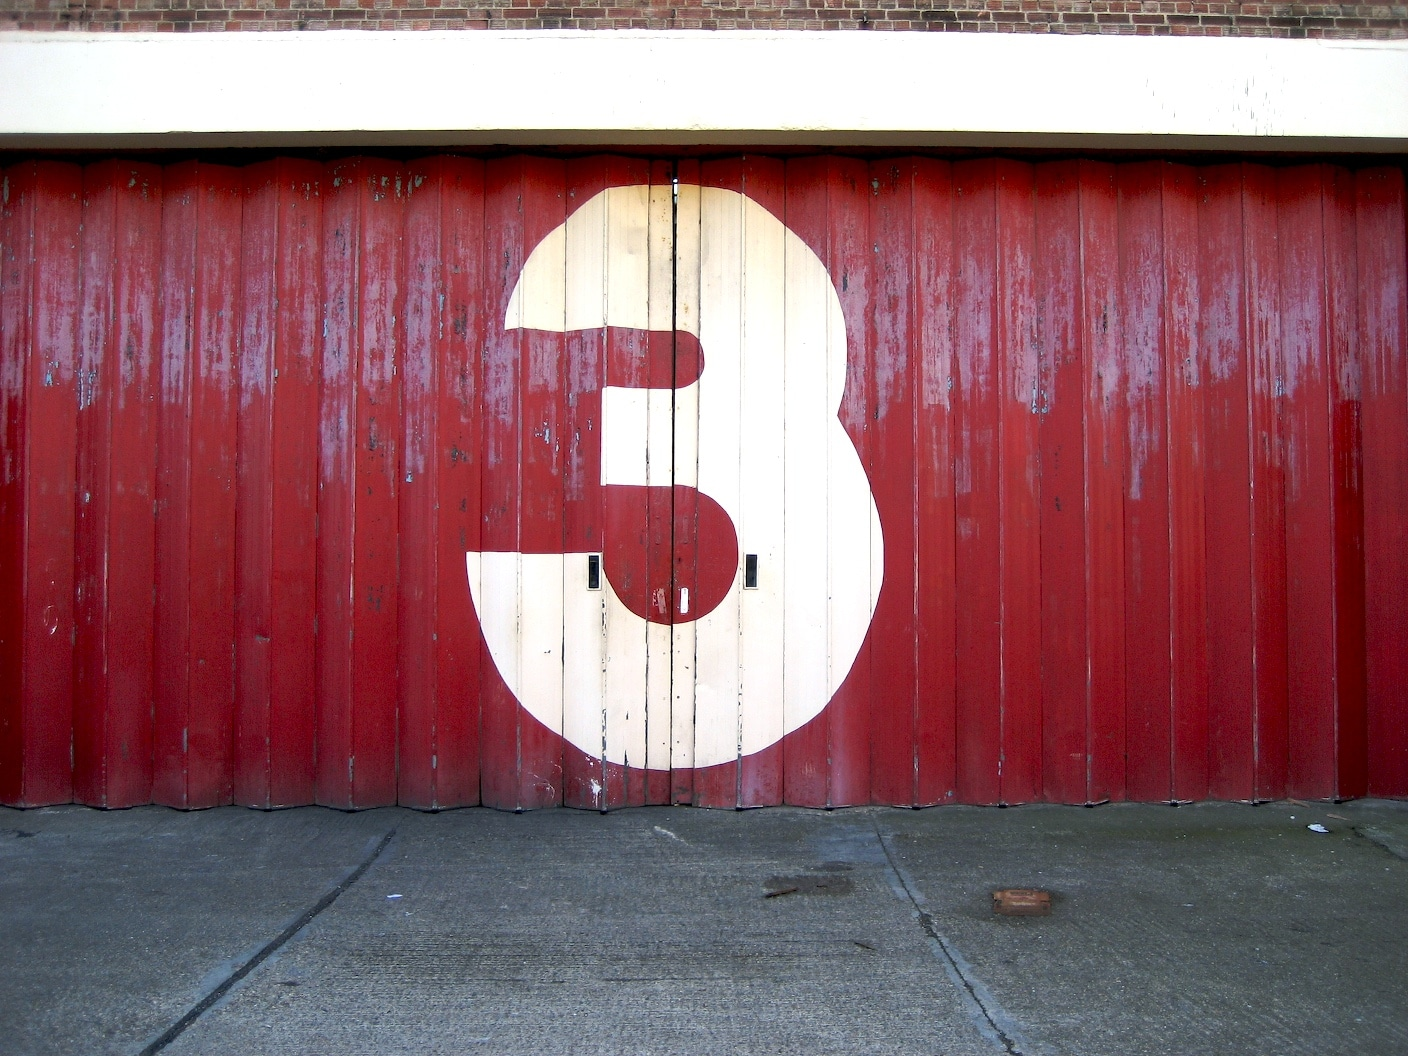 The number three painted on a garage door